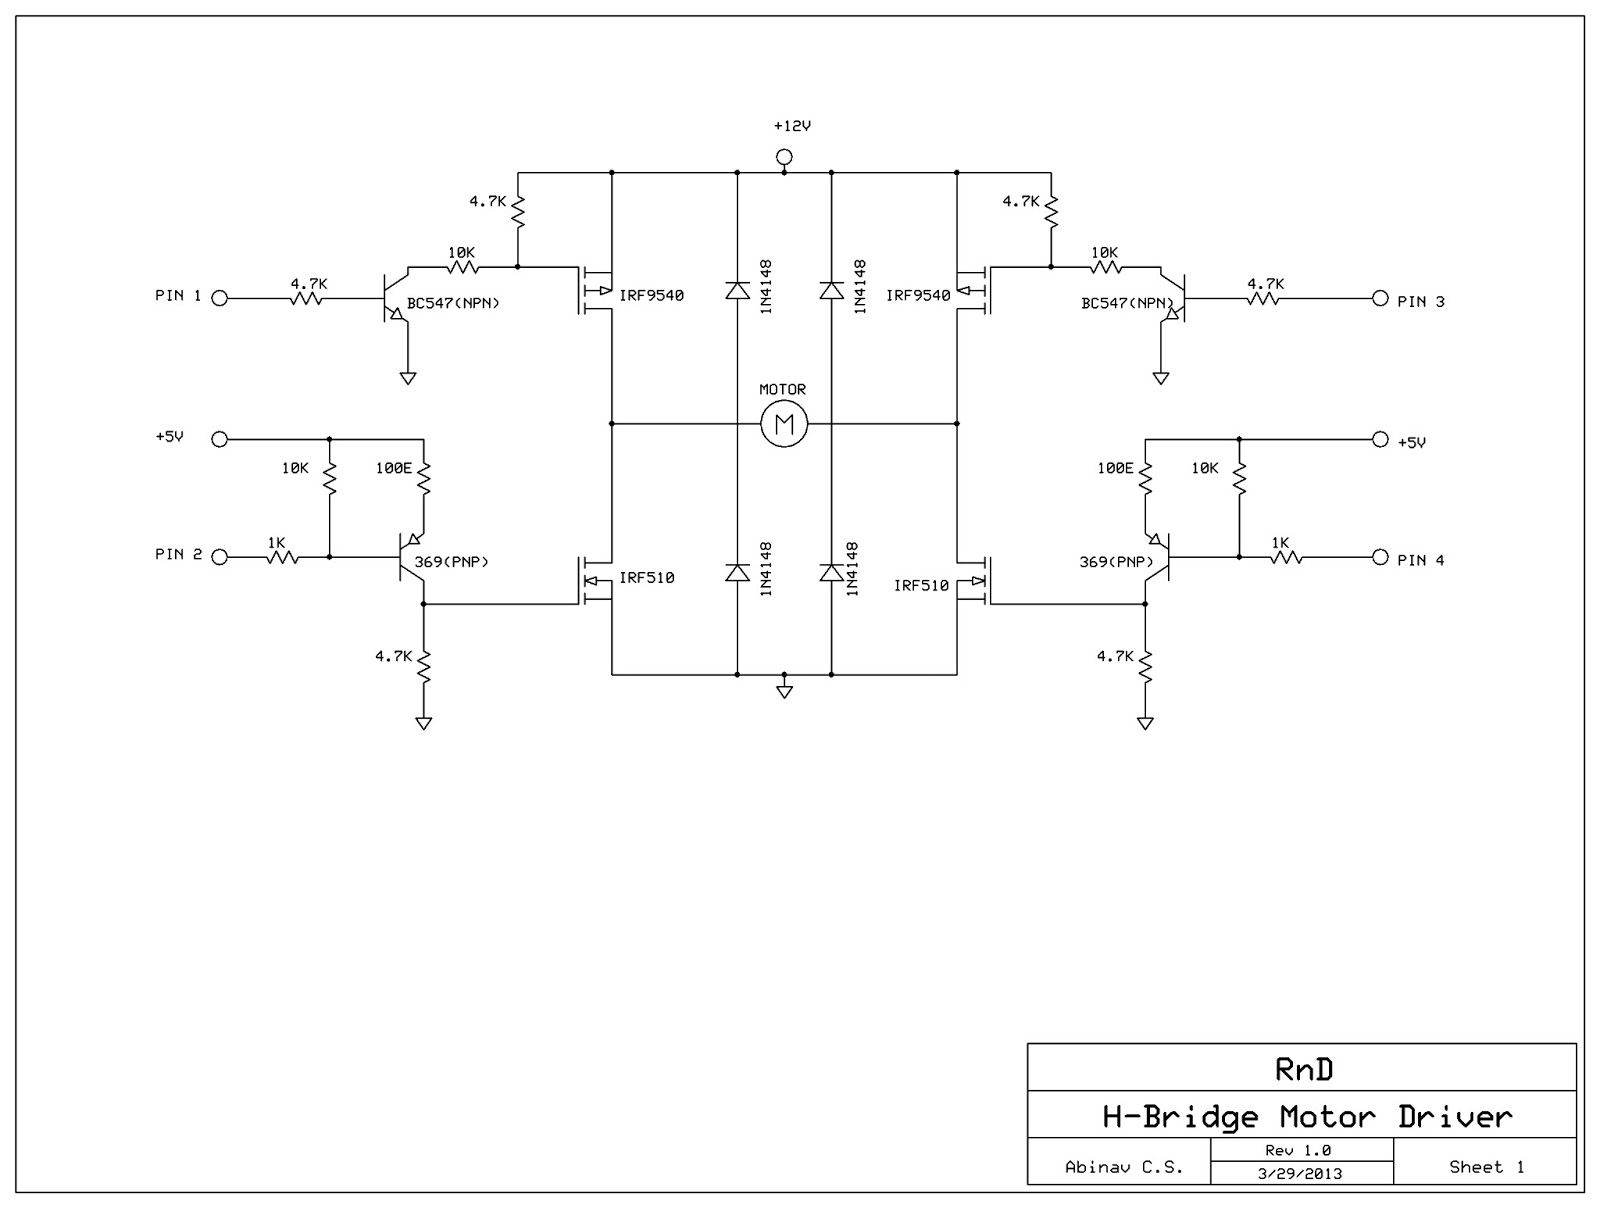 H-Bridge Motor Driver using MOSFETs and Transistors - schematic